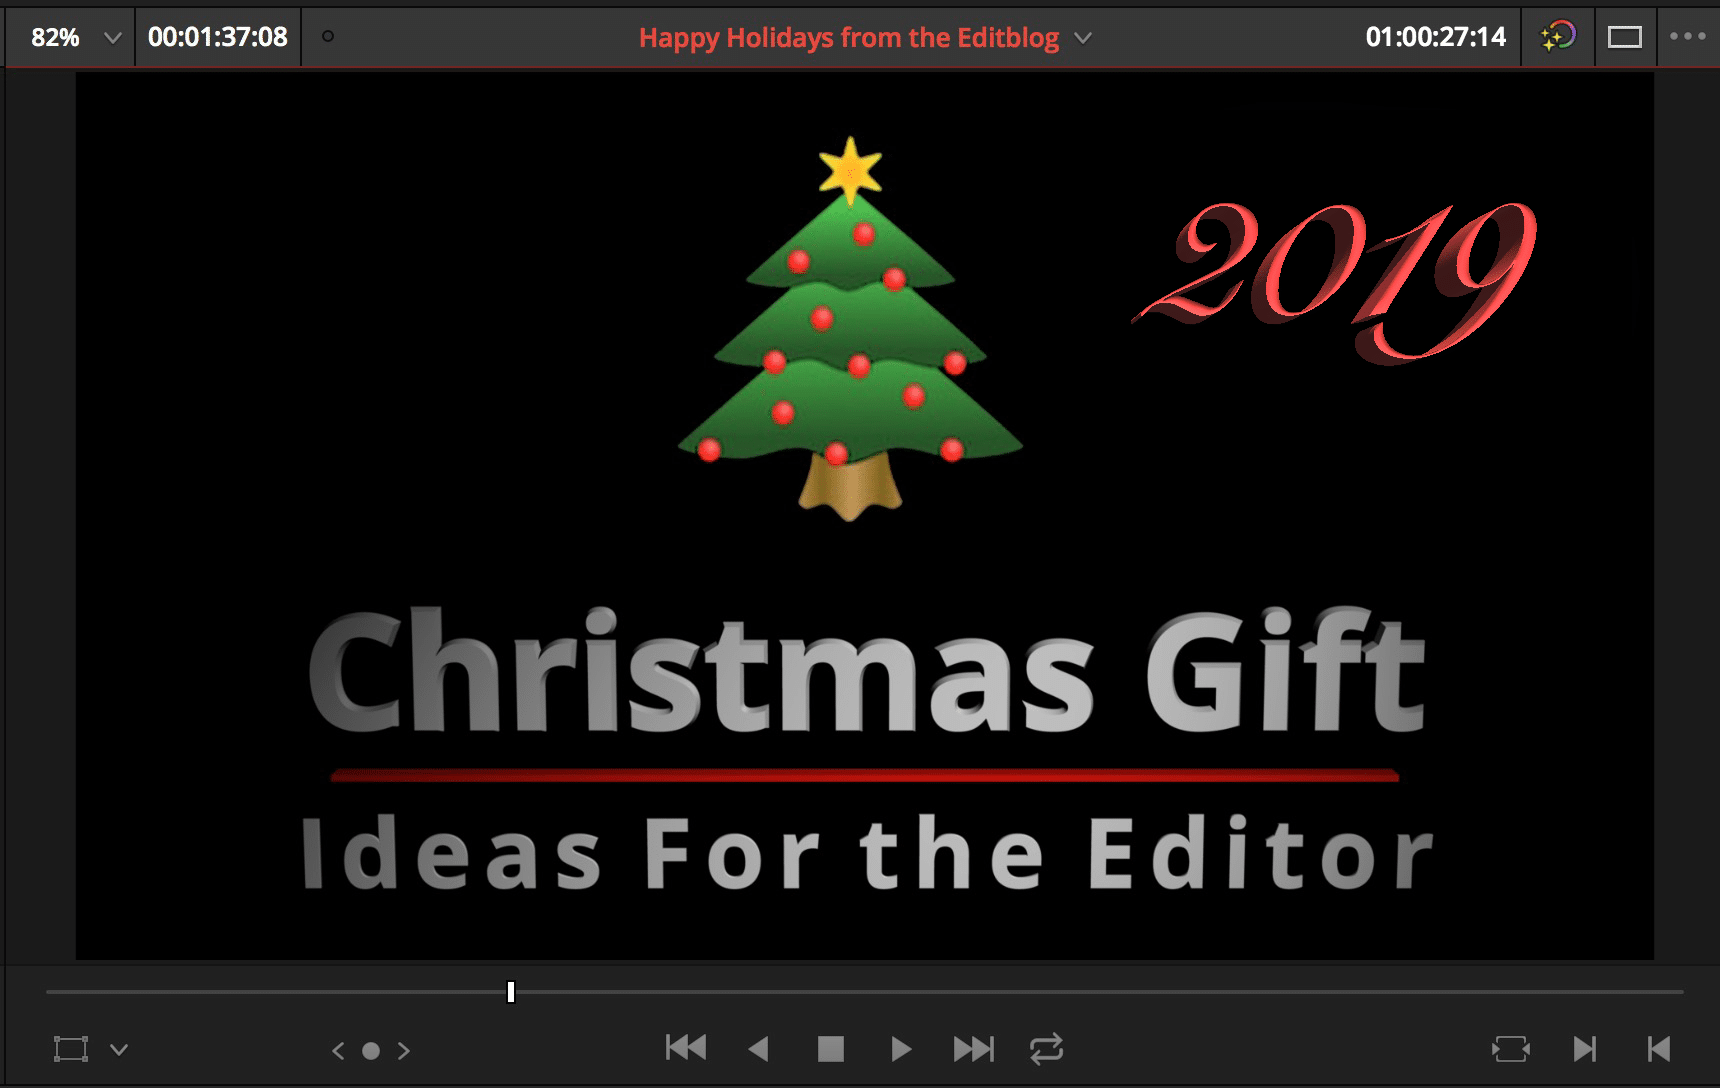 Christmas Gift Ideas for the Editor - 2019, the 10 Year Edition 30